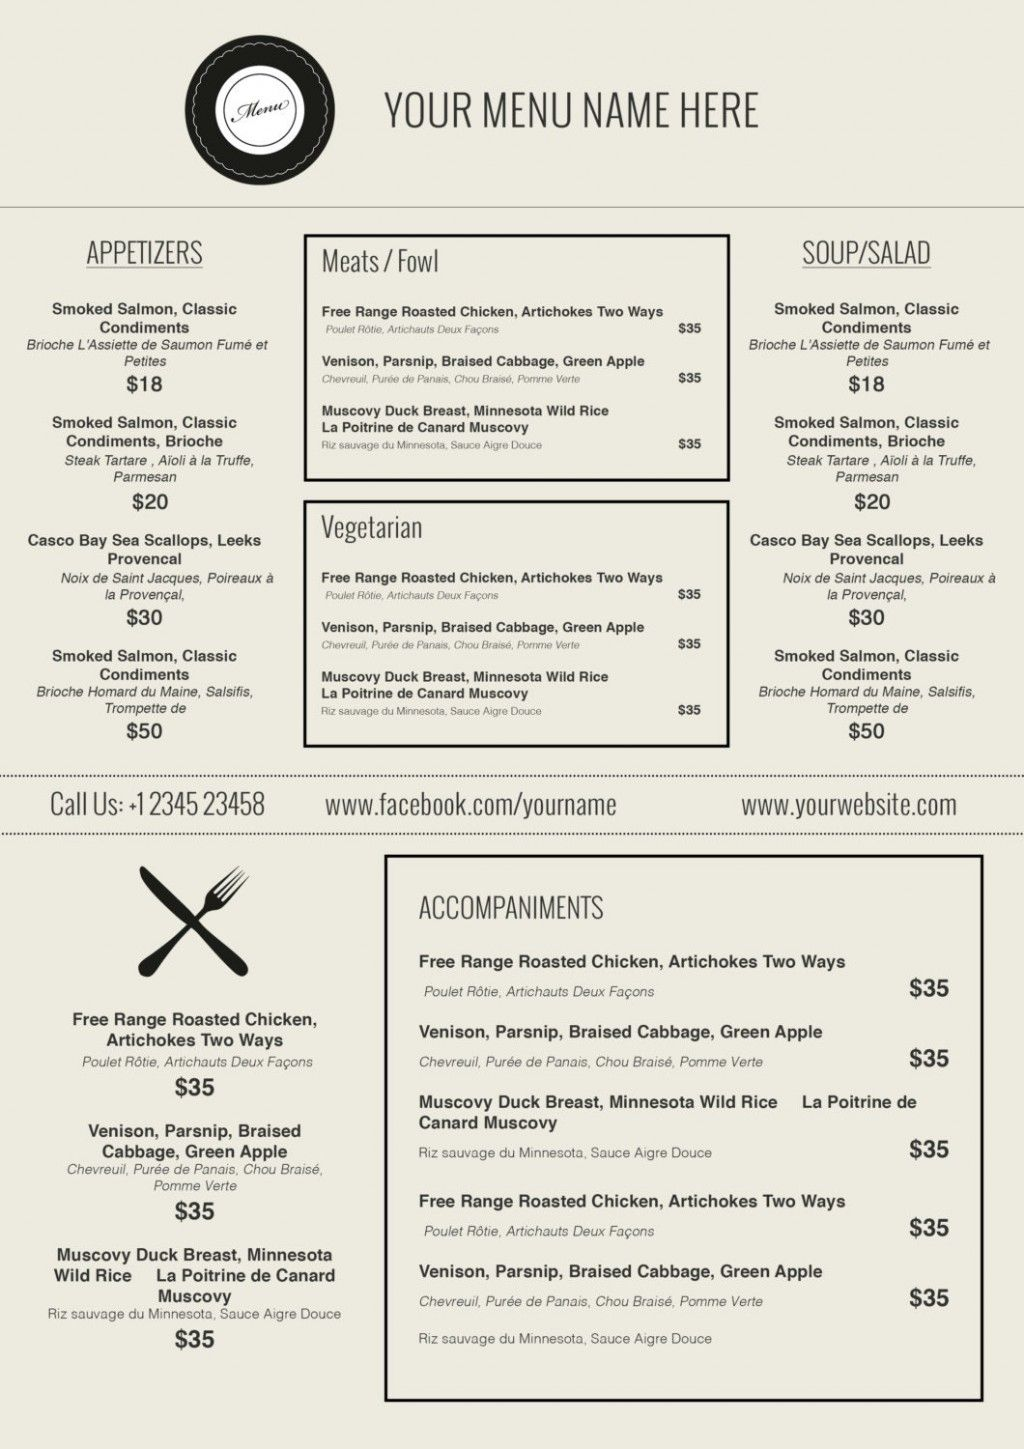 The Amazing 008 Template Ideas Free Restaurant Menu Templates For Word Regarding Free Cafe Menu Free Menu Templates Restaurant Menu Template Menu Template Word